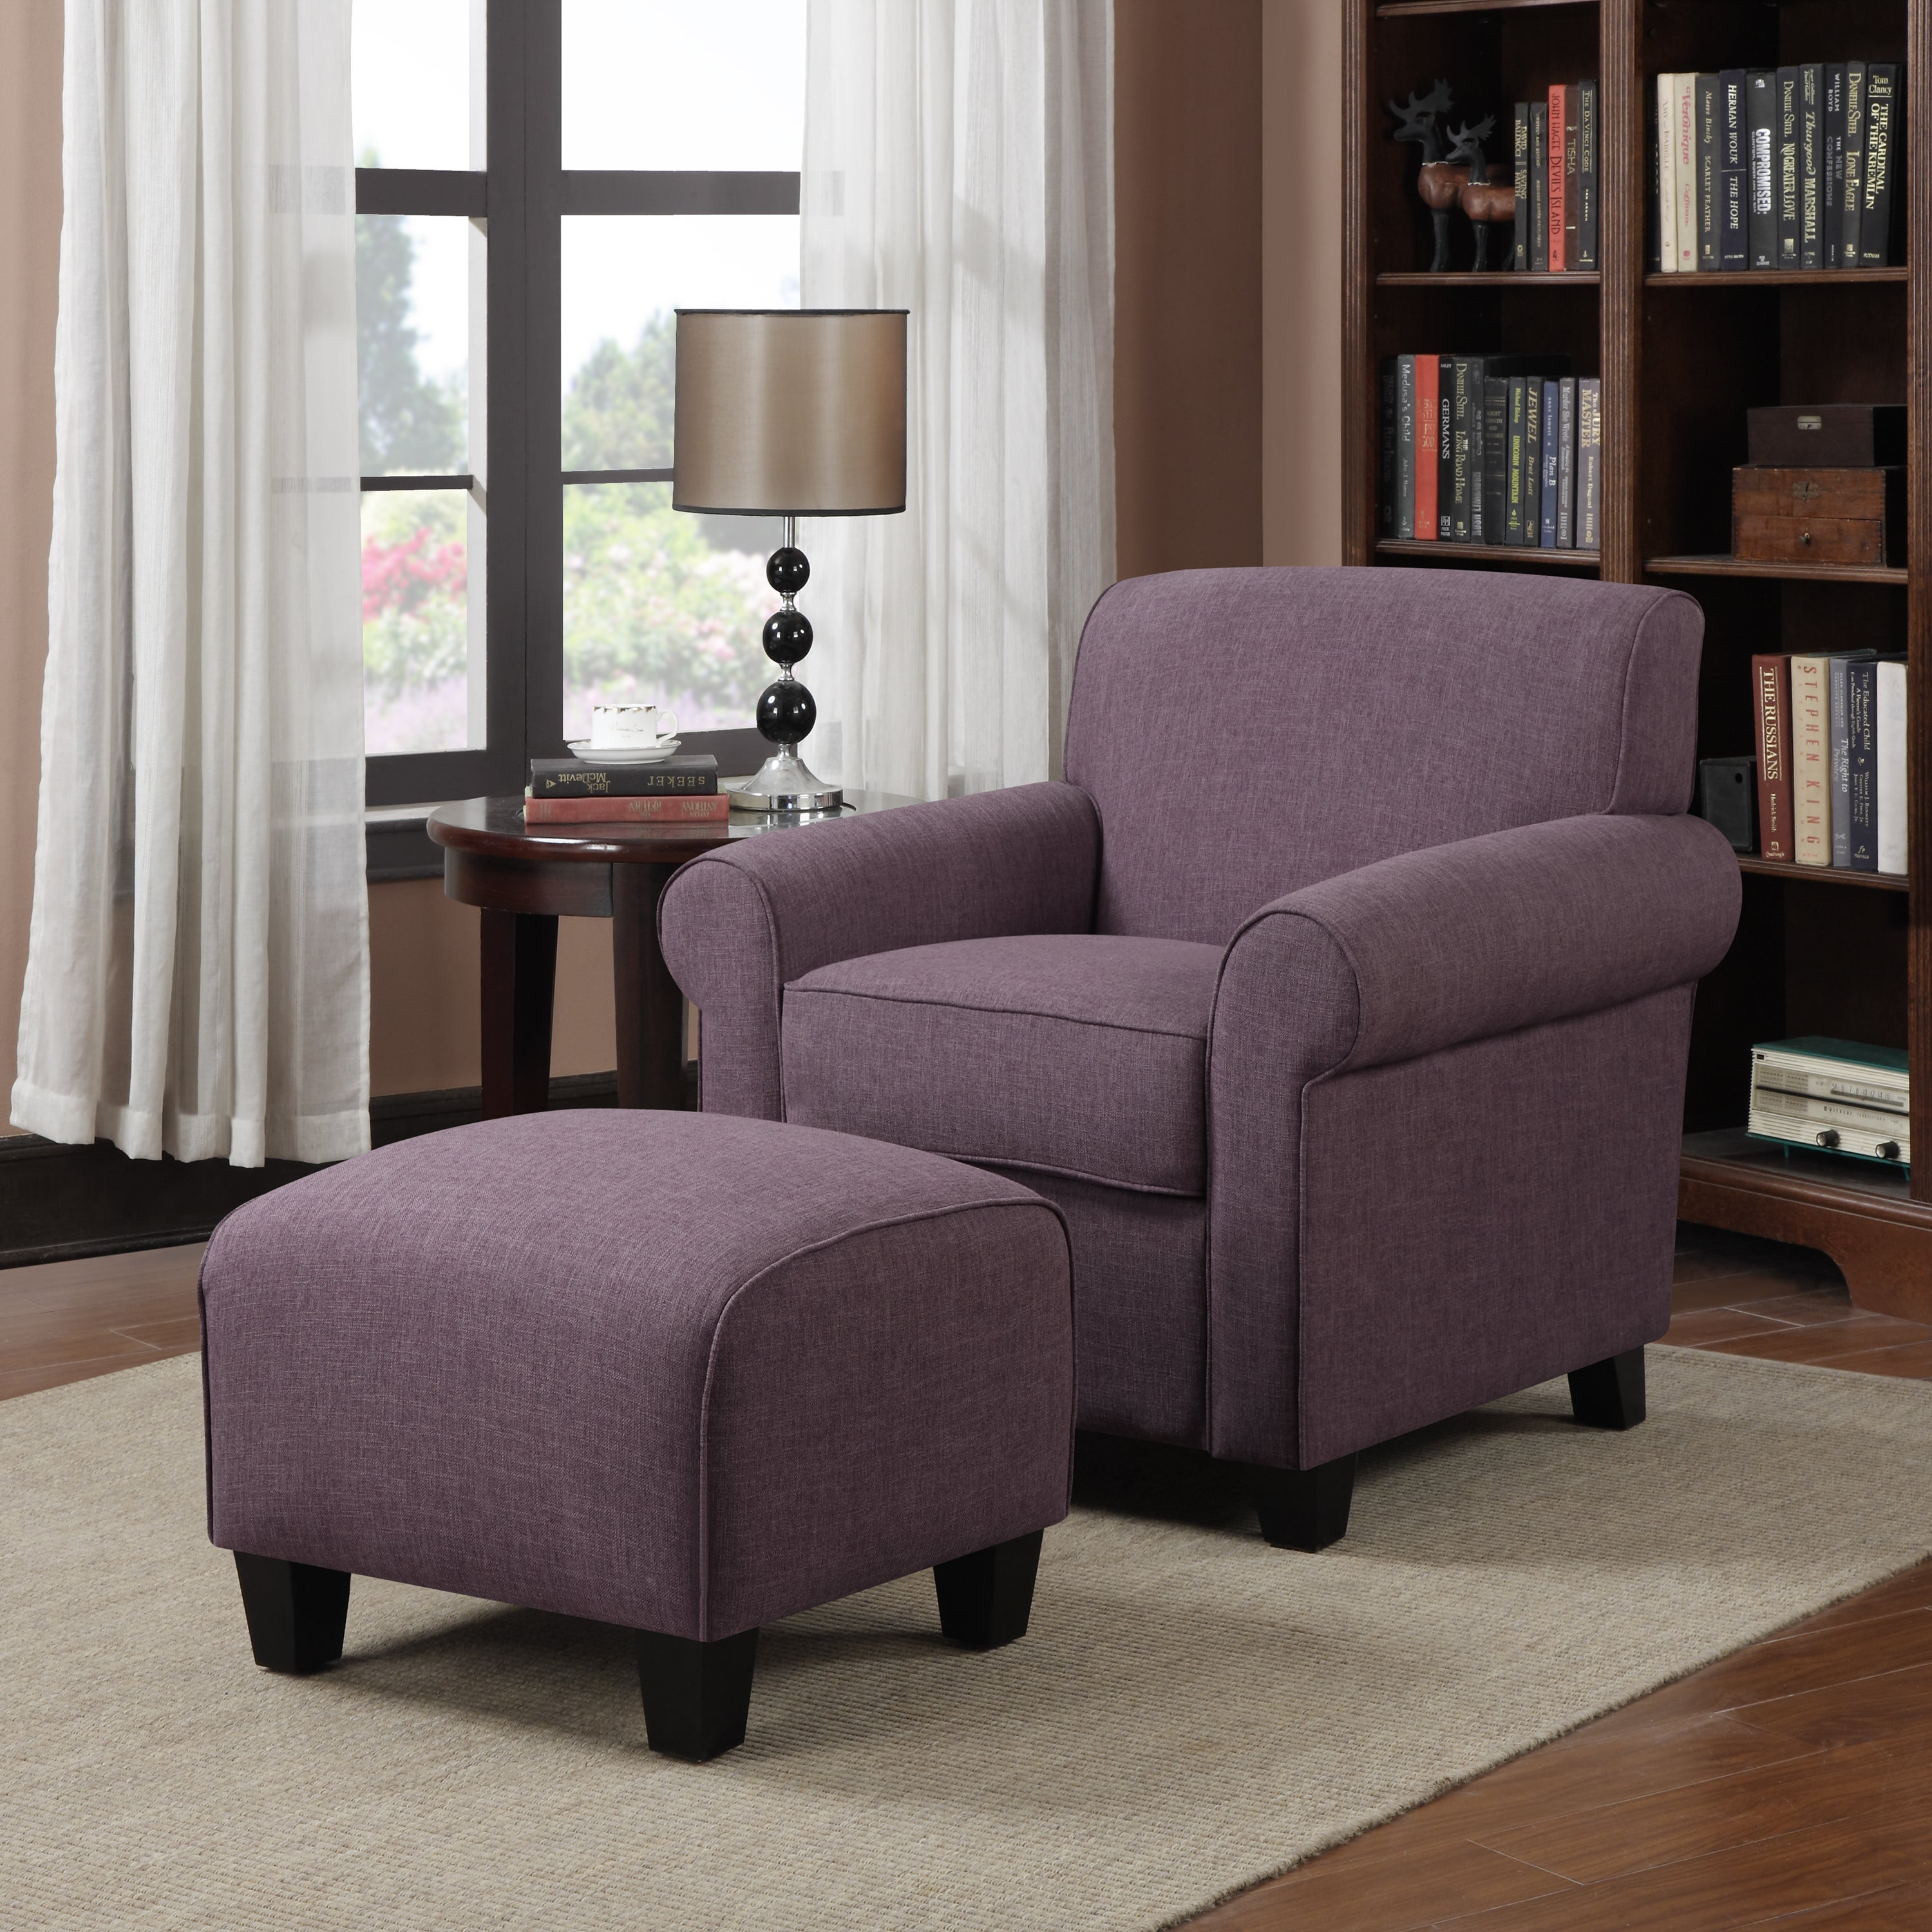 bardot swoop home free over accent marlow chair chairs product shipping on ottomans orders overstock garden and